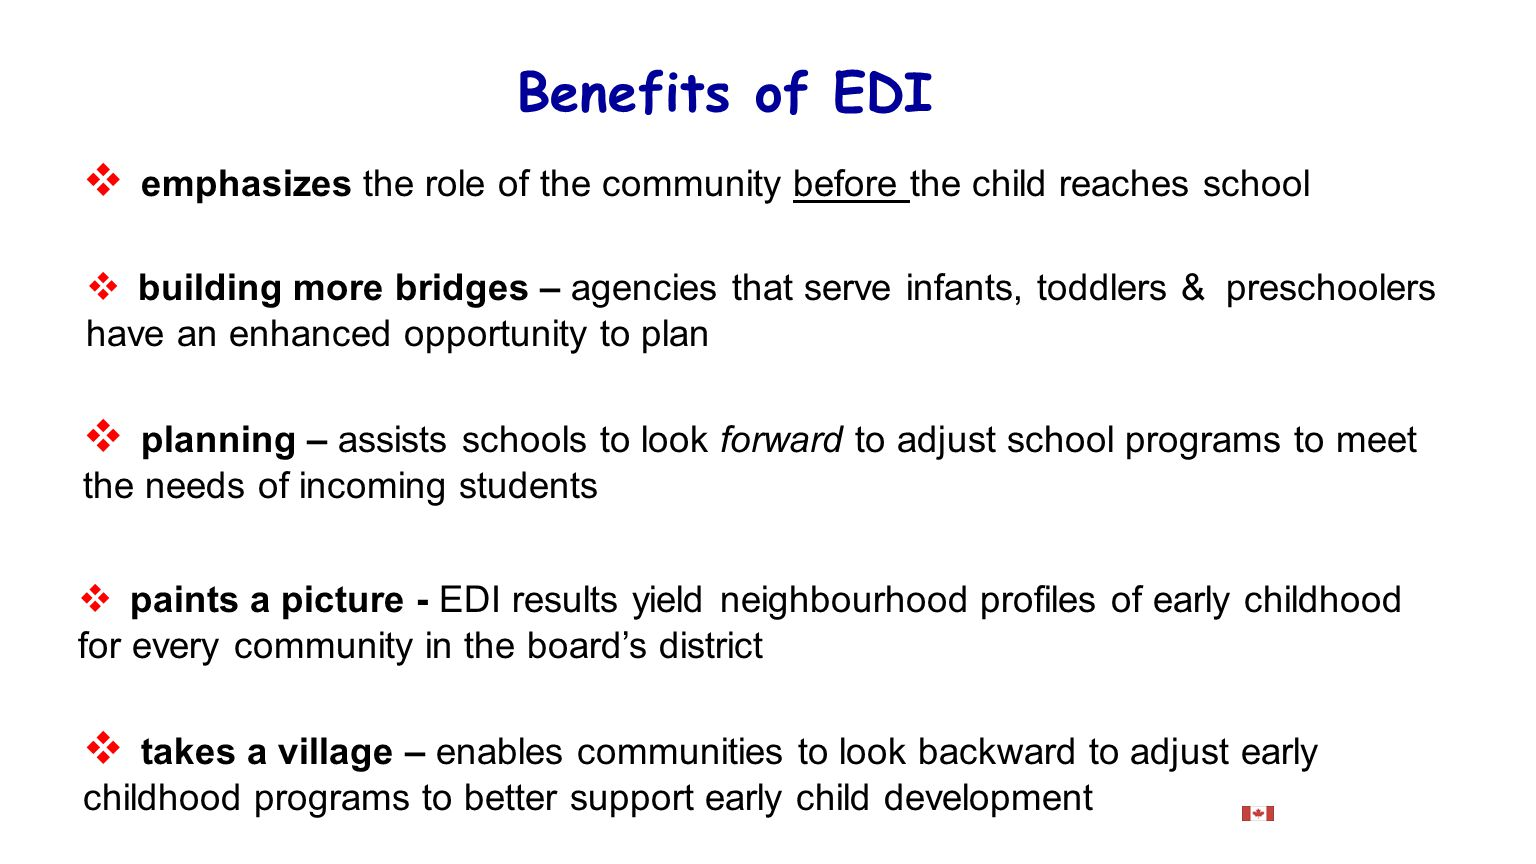 Benefits of EDI  building more bridges – agencies that serve infants, toddlers & preschoolers have an enhanced opportunity to plan  planning – assists schools to look forward to adjust school programs to meet the needs of incoming students  takes a village – enables communities to look backward to adjust early childhood programs to better support early child development  emphasizes the role of the community before the child reaches school  paints a picture - EDI results yield neighbourhood profiles of early childhood for every community in the board's district